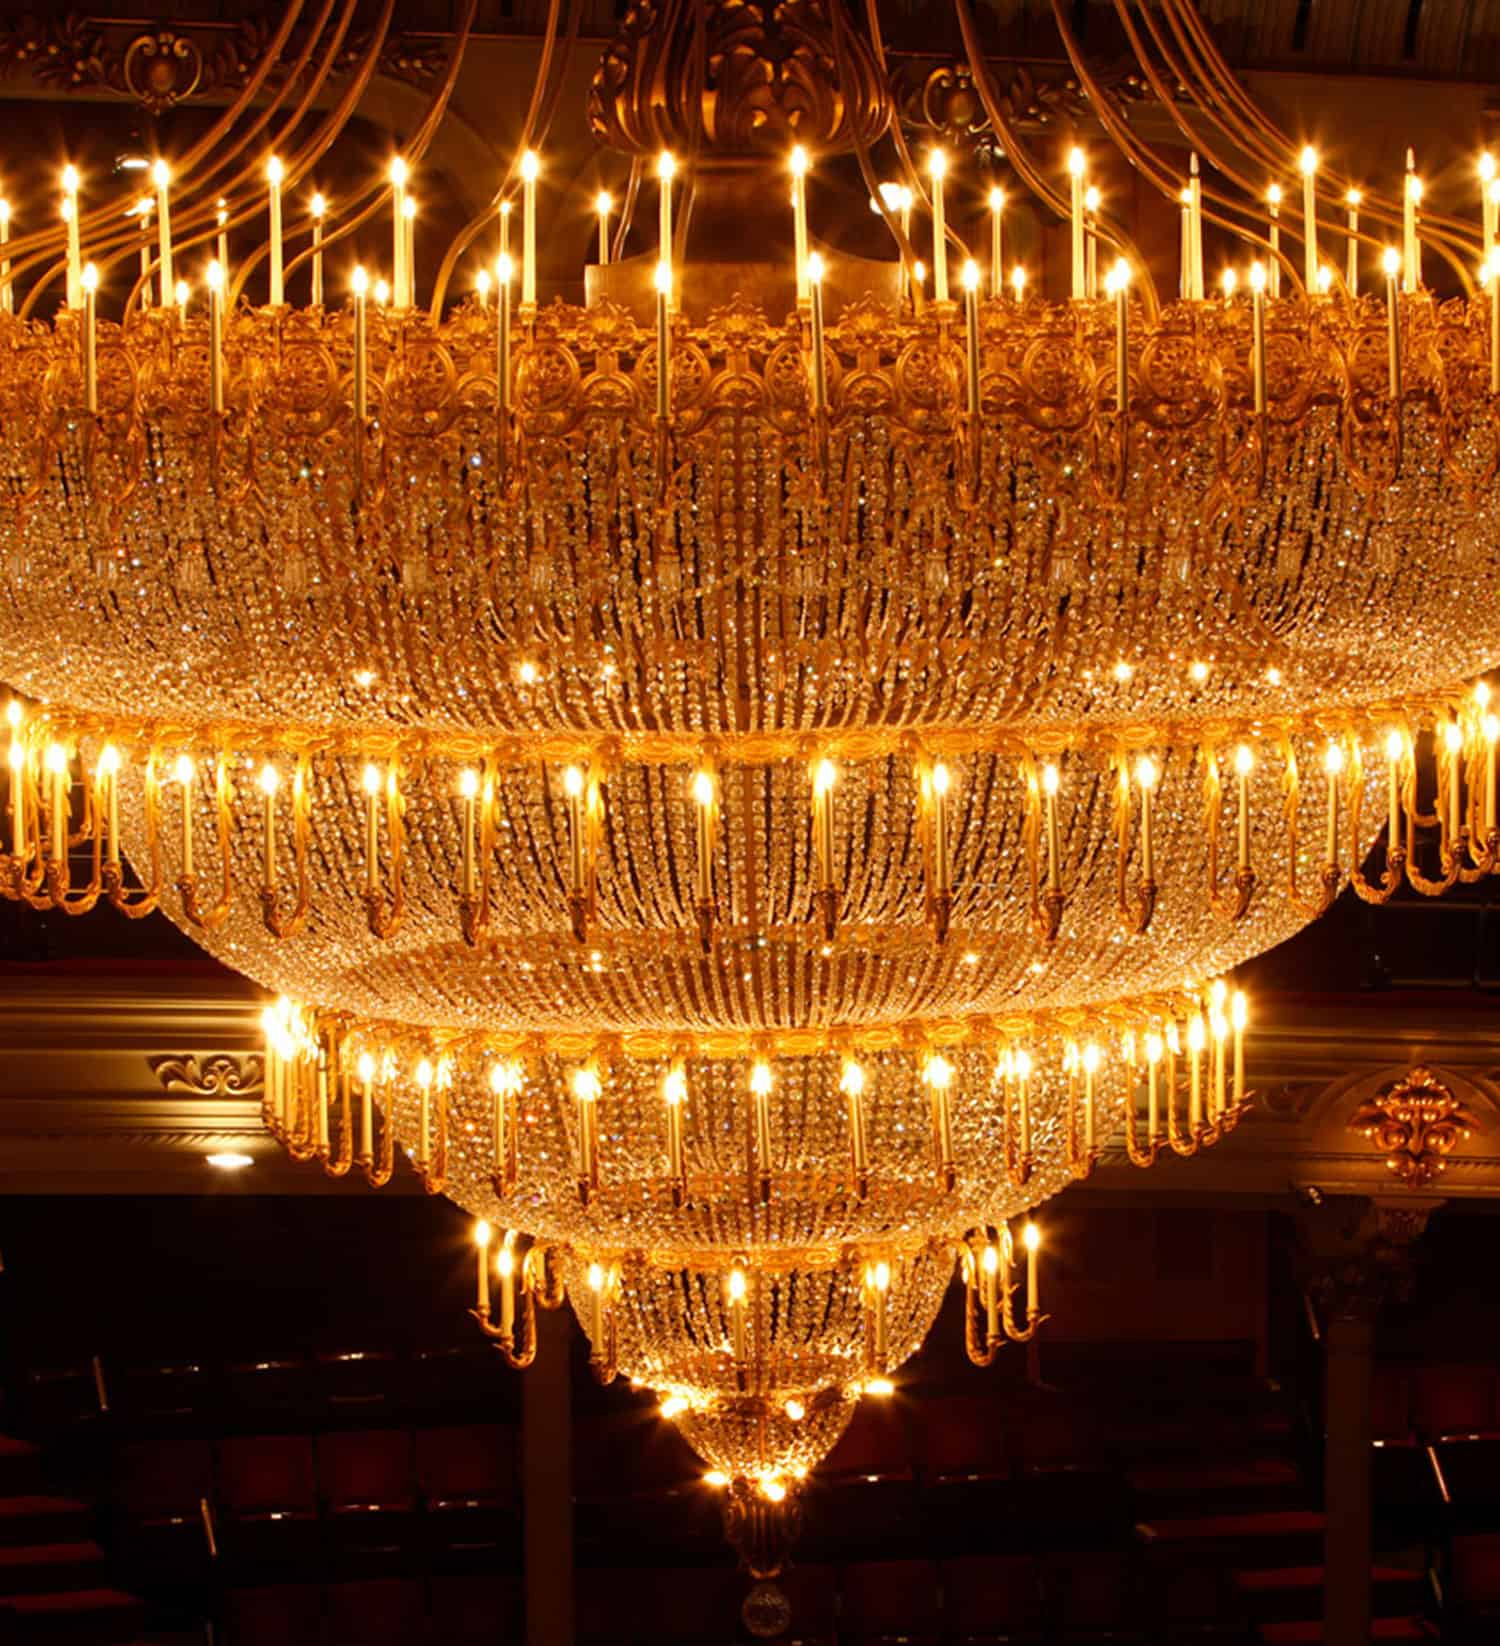 The Chandelier at the Academy of Music, Philadelphia PA